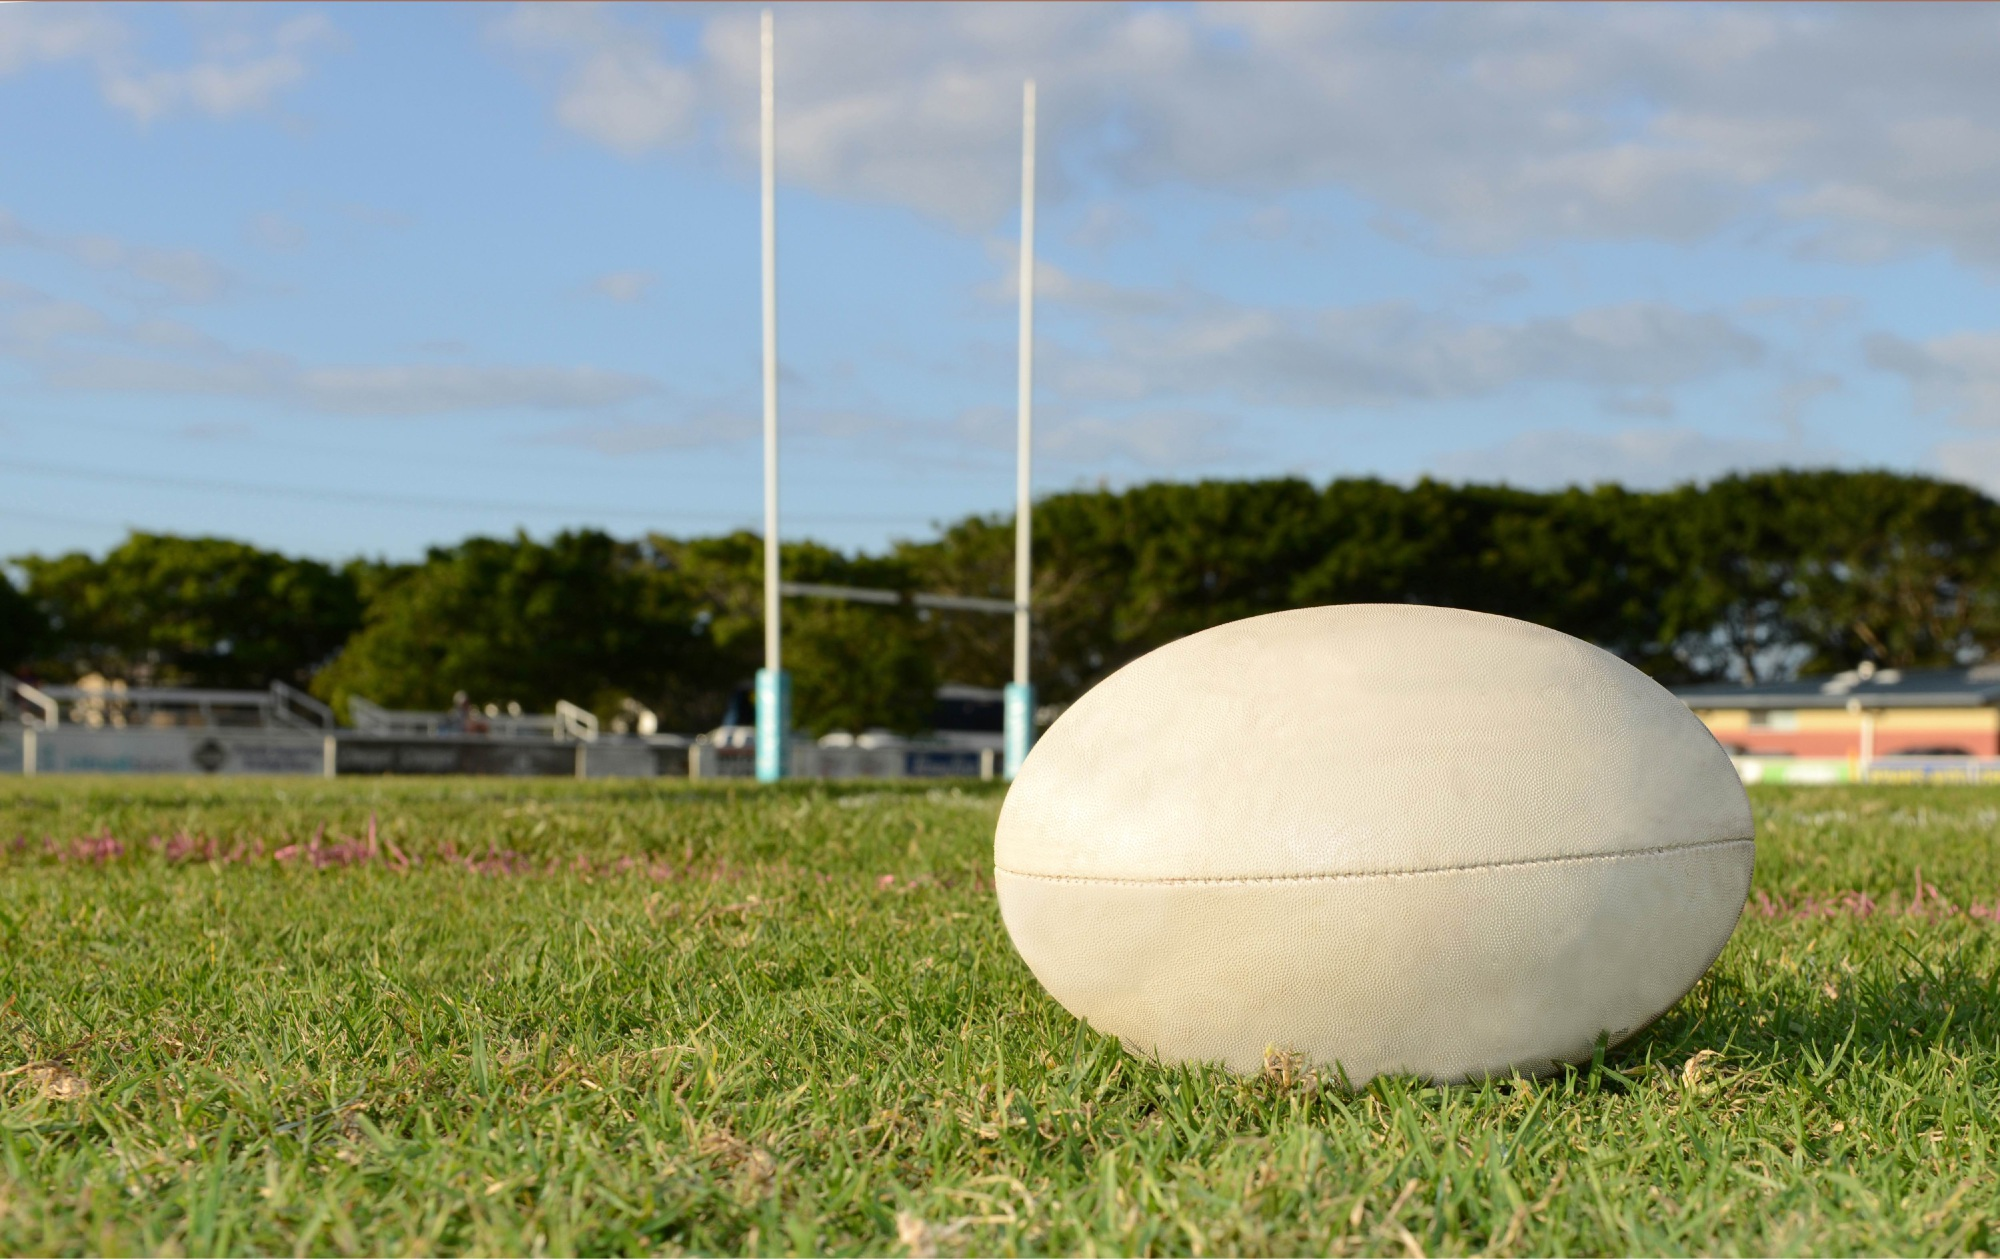 Rugby league: Rockingham Coastal Sharks to host Harmony Nines tournament